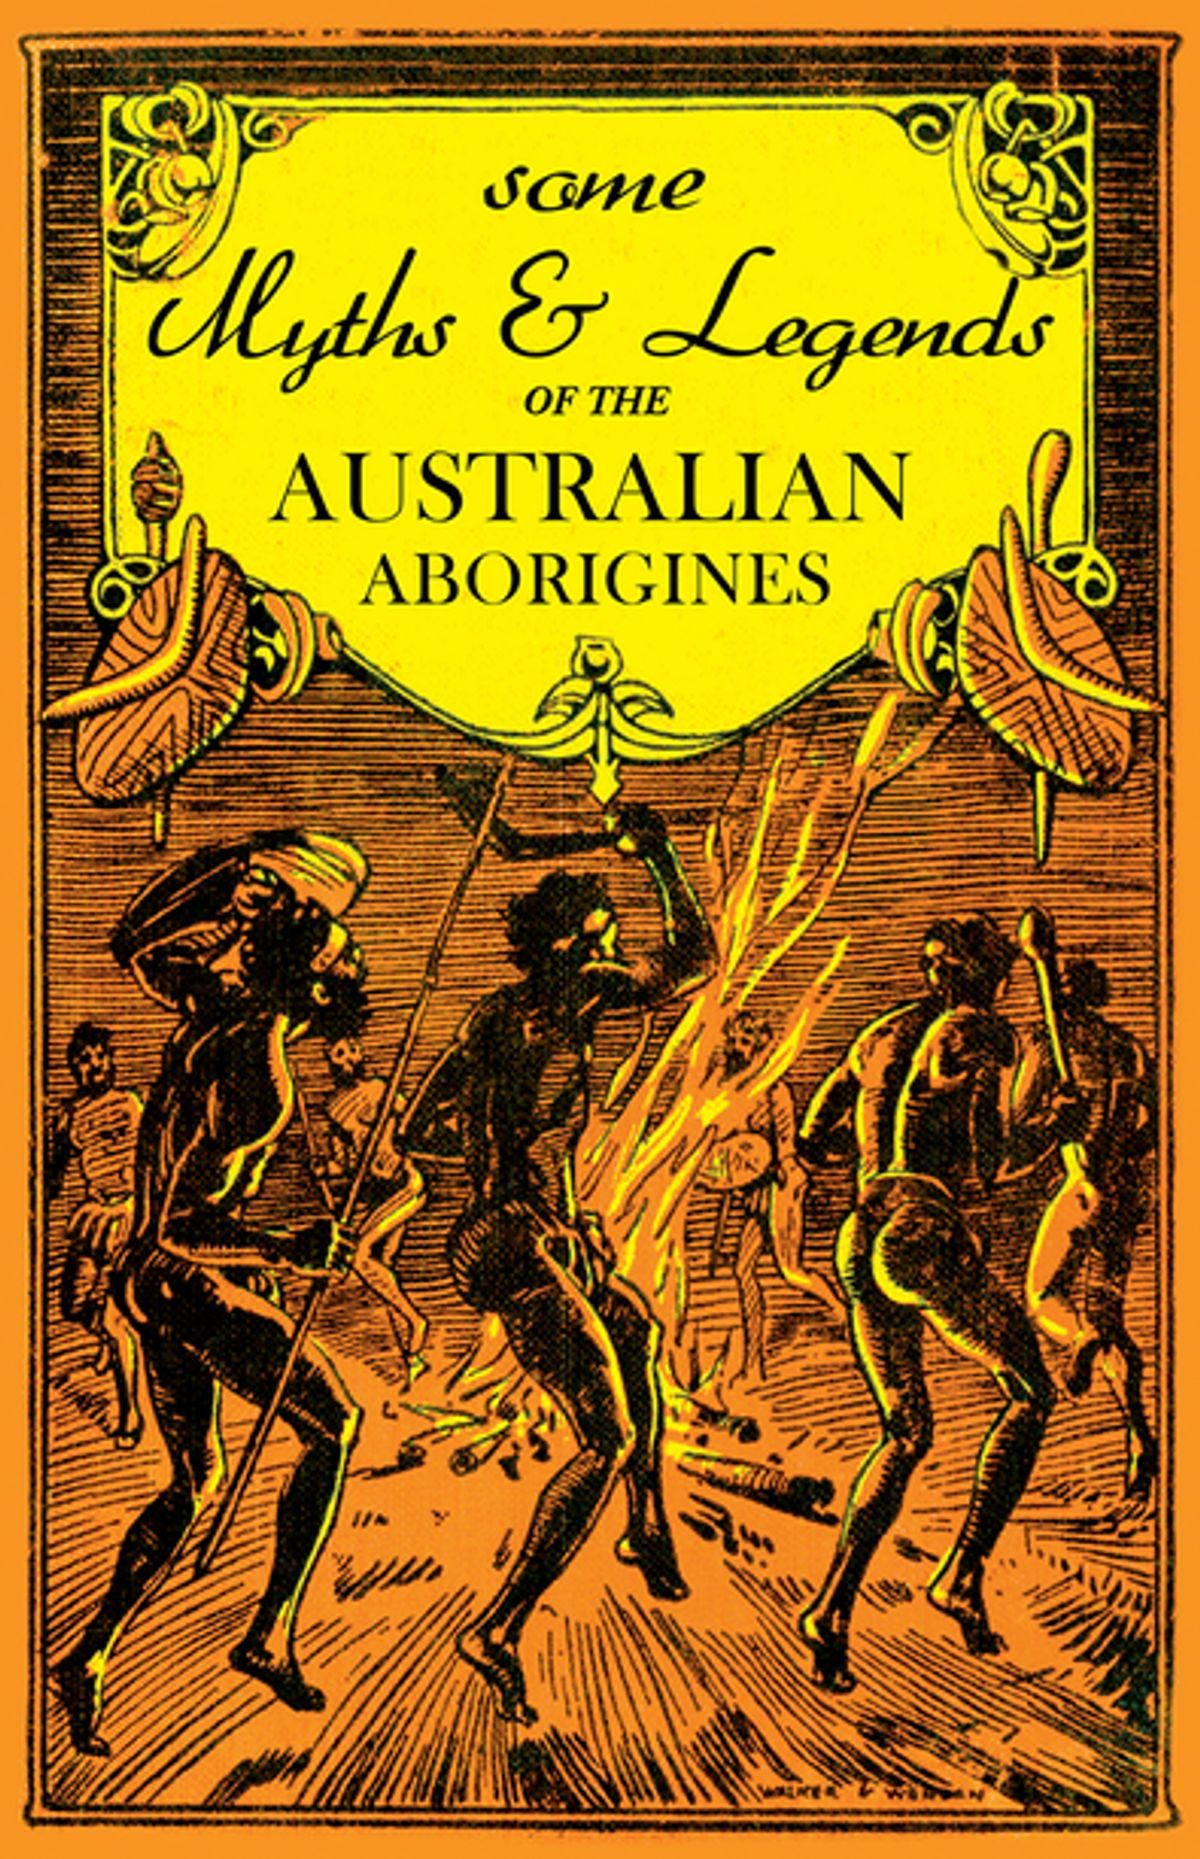 W.J. Thomas, Some Myths and Legends of the Australian Aborigines, 1923.